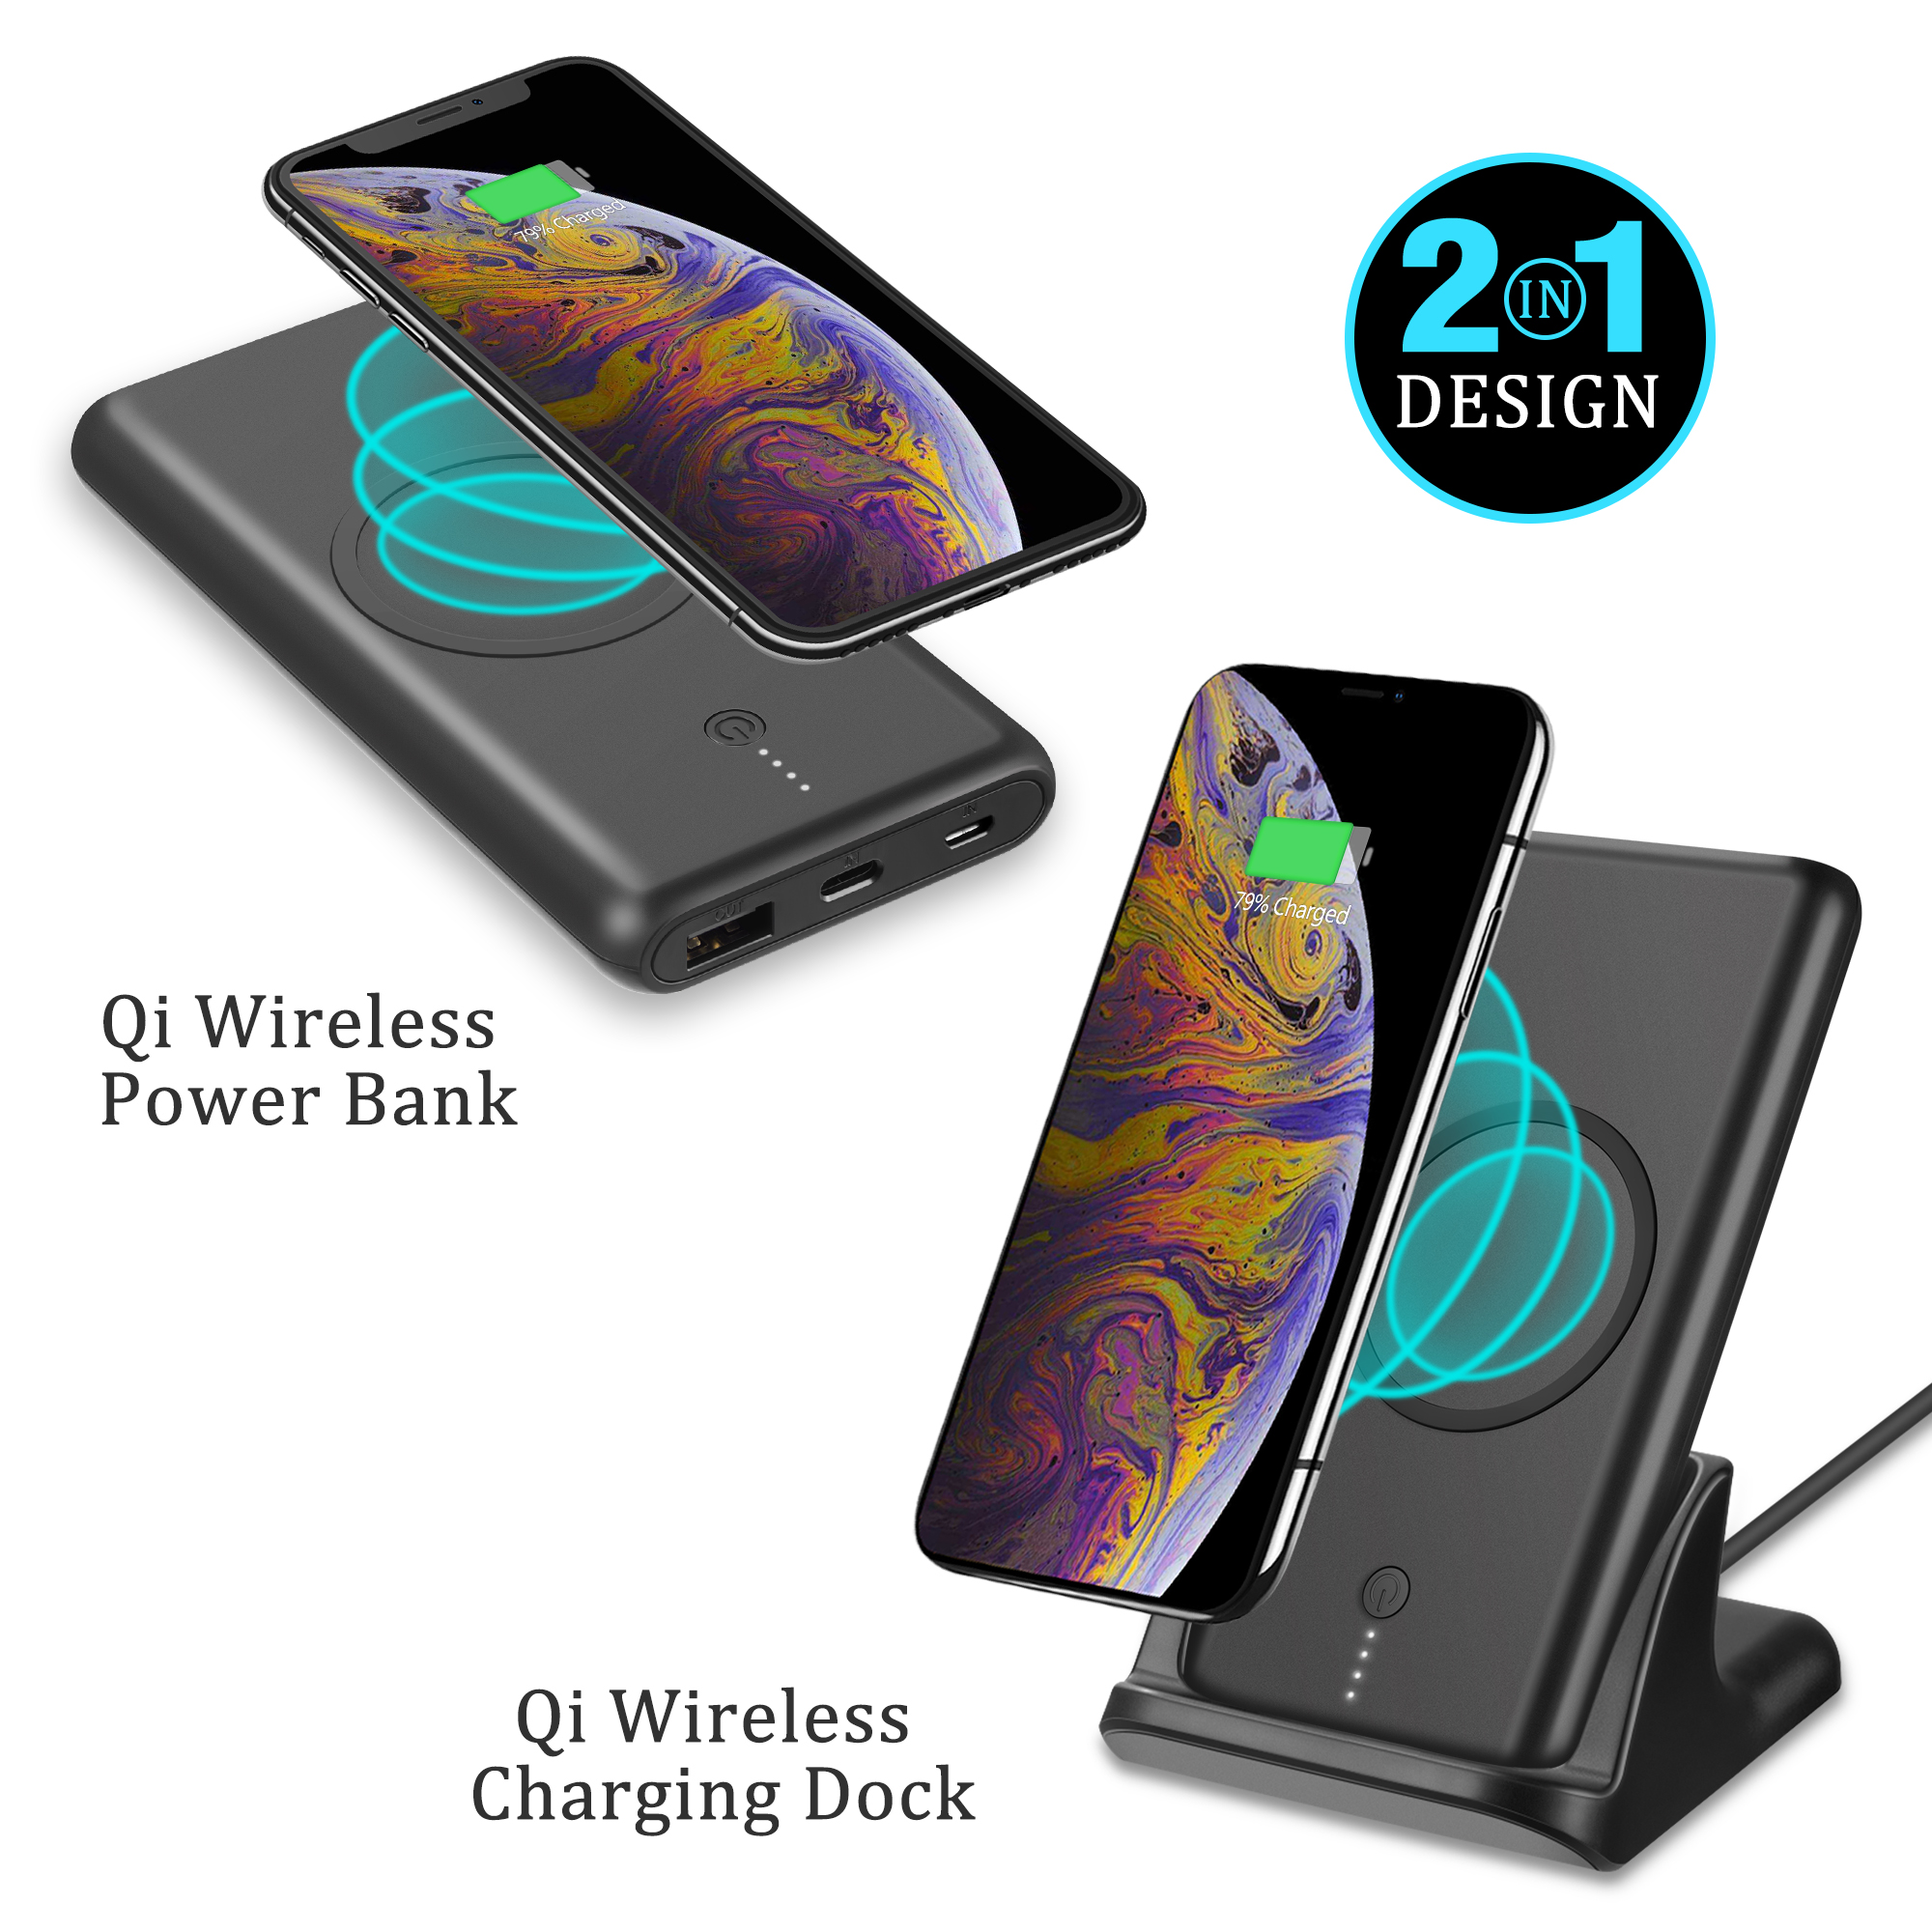 Wireless Charging Stand Qi Wireless Charger Dock, External Battery Charger Pack Portable Charger Battery Pack for Samsung Galaxy S8 / S8 Plus / Note 8/ Note 5/ S7 / S7 Edge / S6 / iPhone 8